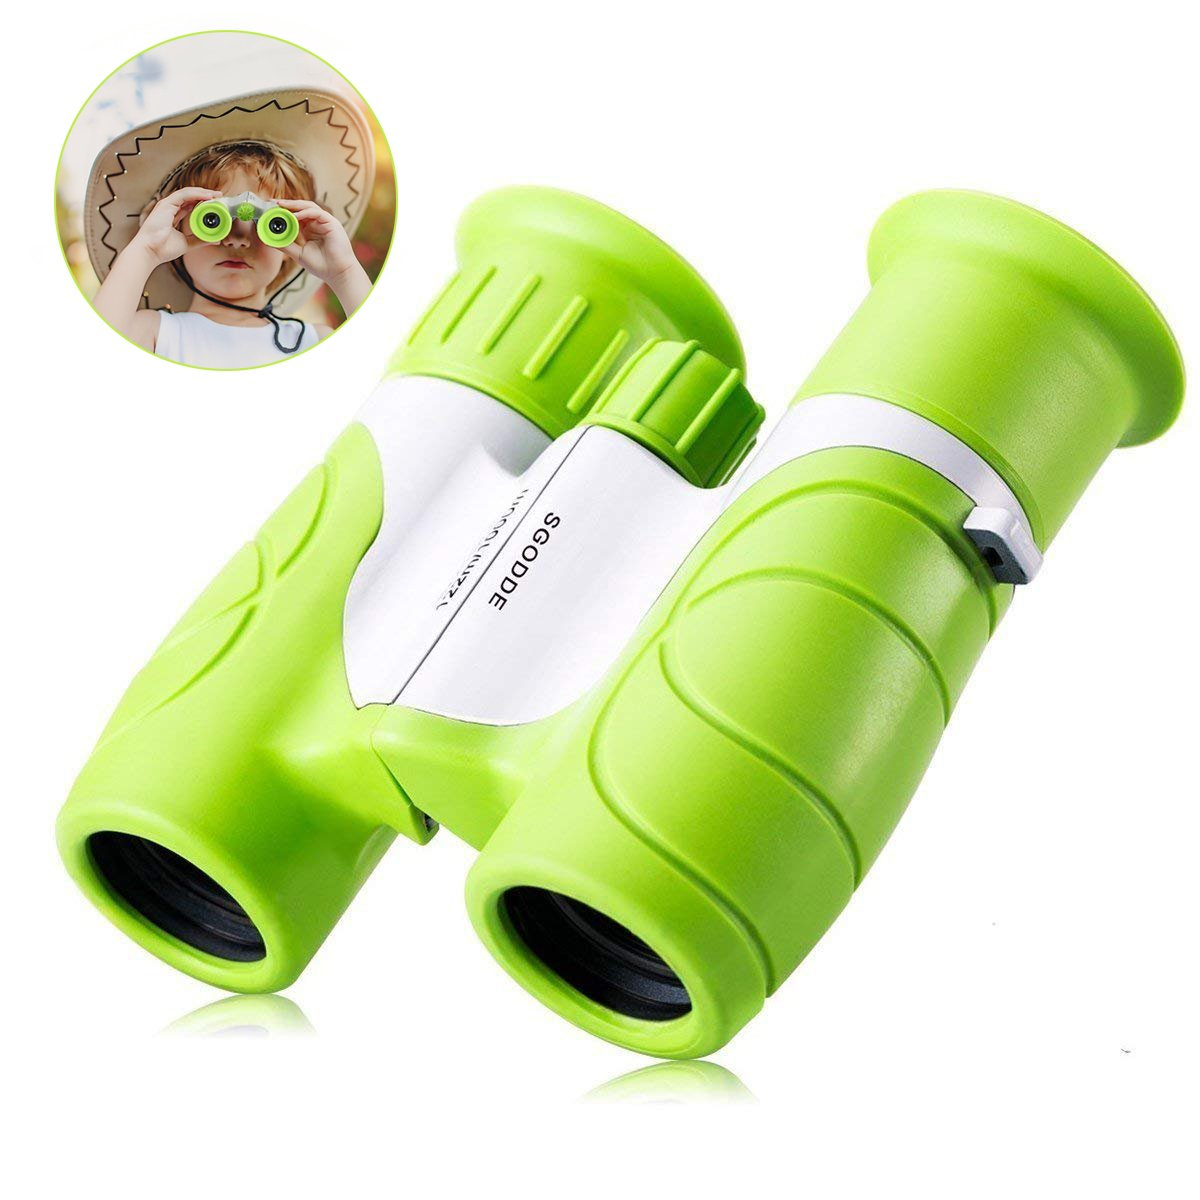 8x21 Kids Binoculars,SGODDE Compact Binoculars-Shock Proof,Waterproof,HD Vision,Teens Toys Telescope,Children Gifts for Outdoor Camping, Hunting, Hiking,Travelling,Concert Green Compact